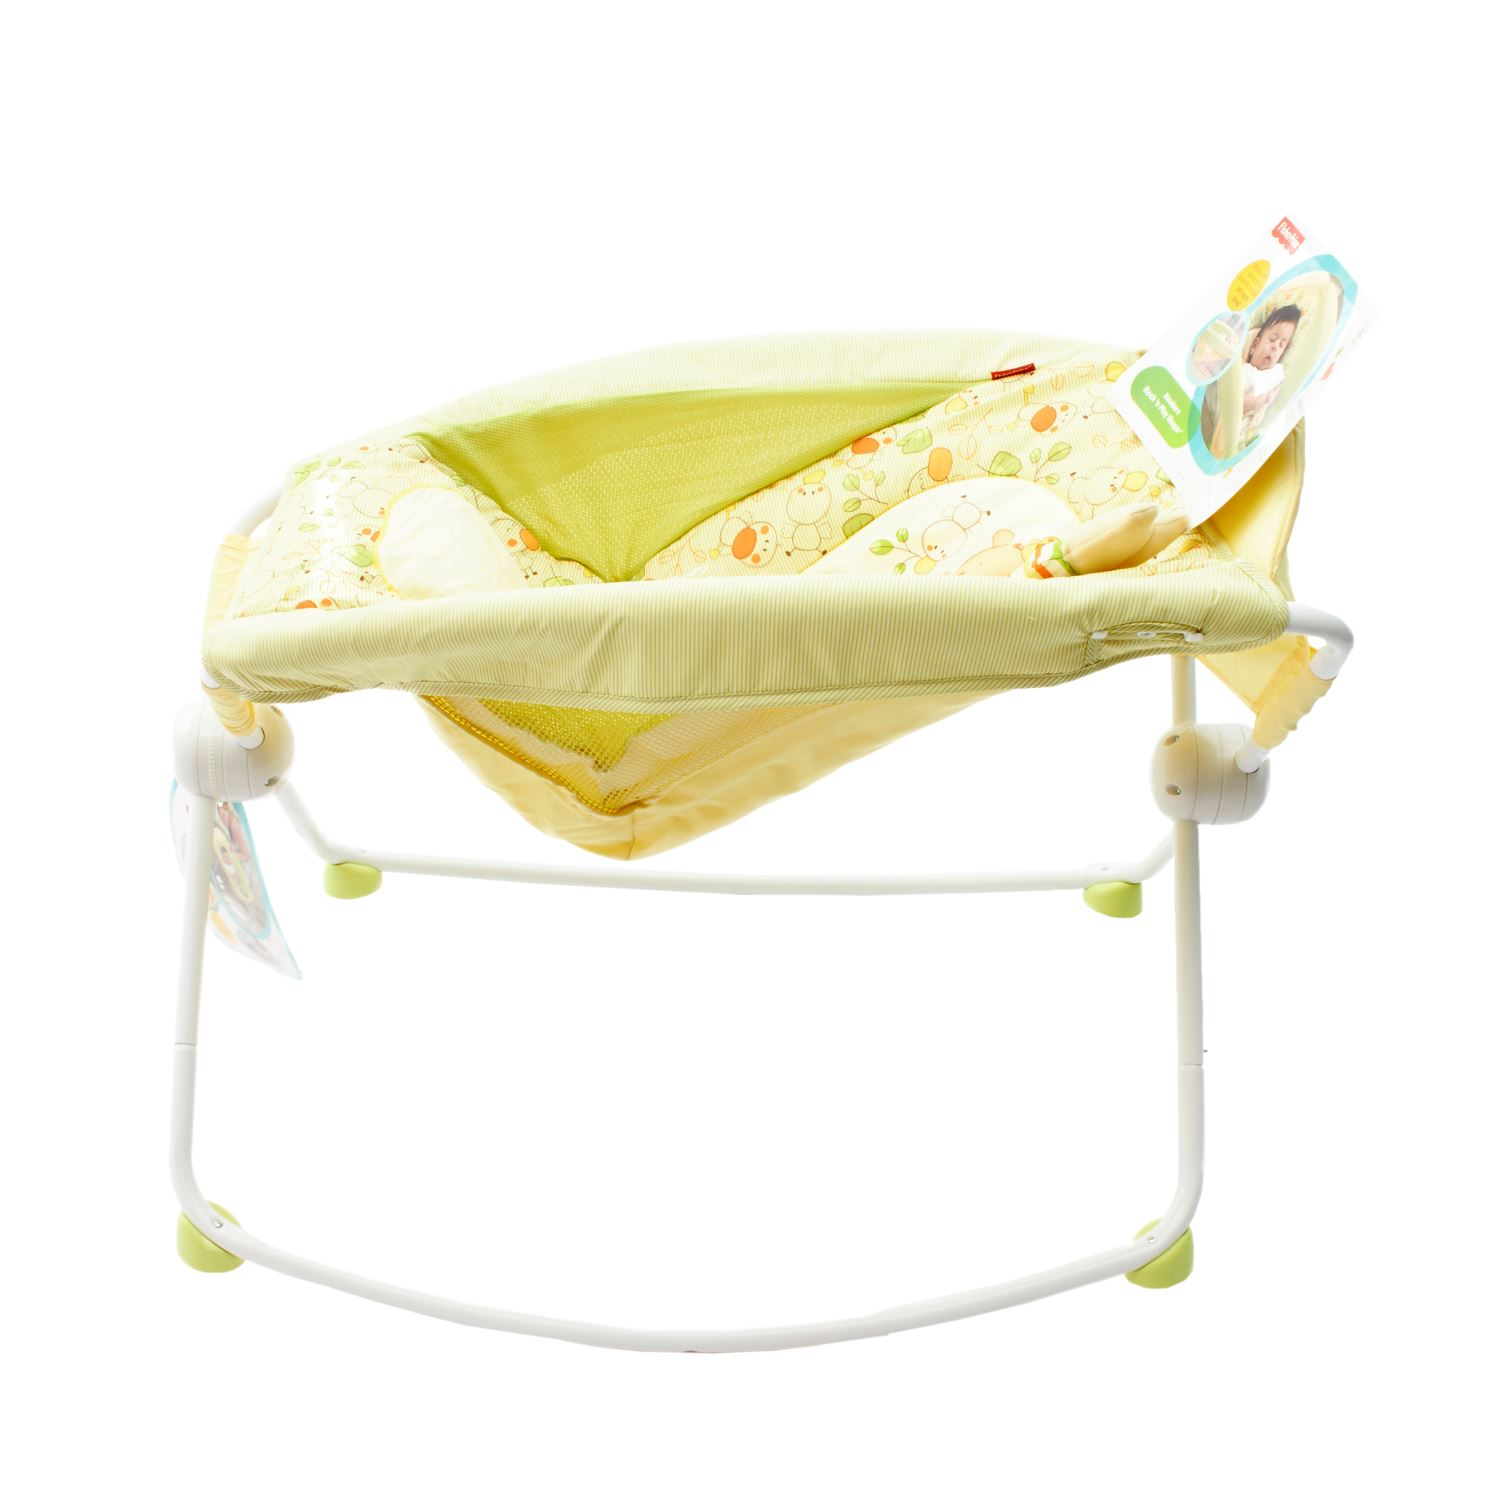 places n parent dsc safety we price awesome and keep suggested the was friend sleeper item baby portable bought fisher sleep play a this rock to it after for